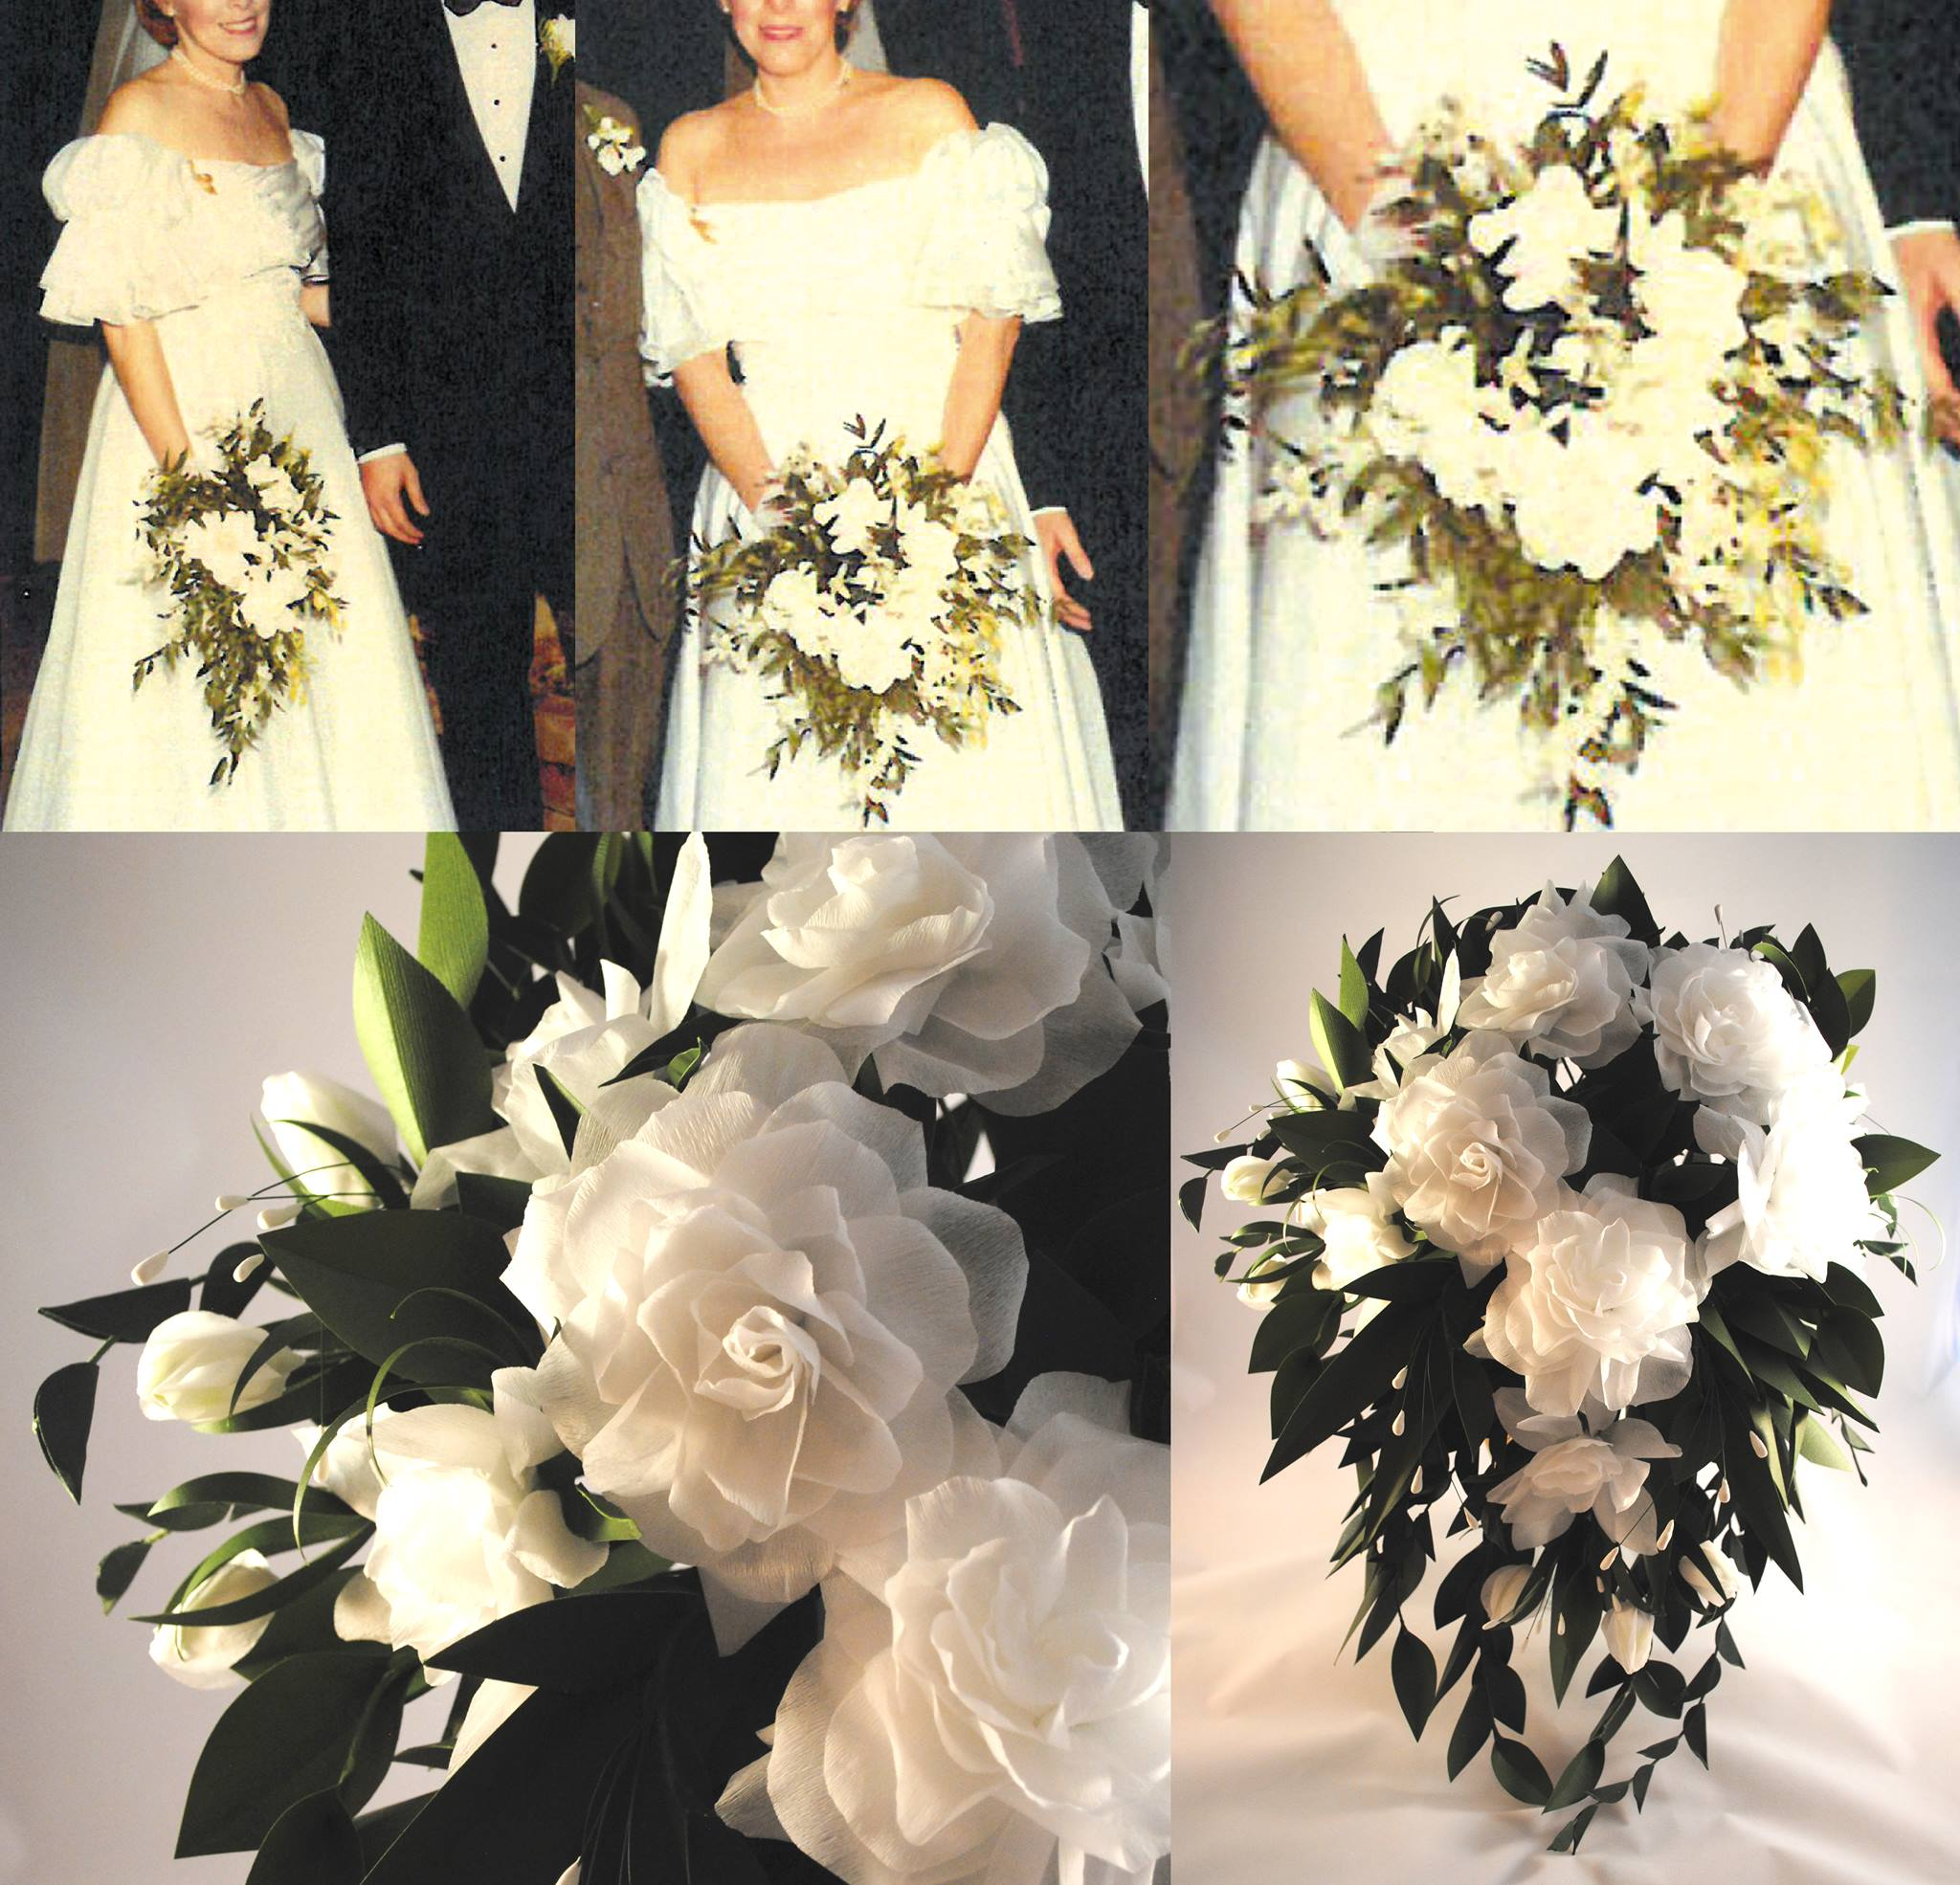 Best gift for her: Recreating her flower bouquet from her wedding, but these will never die! Made from fine paper from an amazing artist!